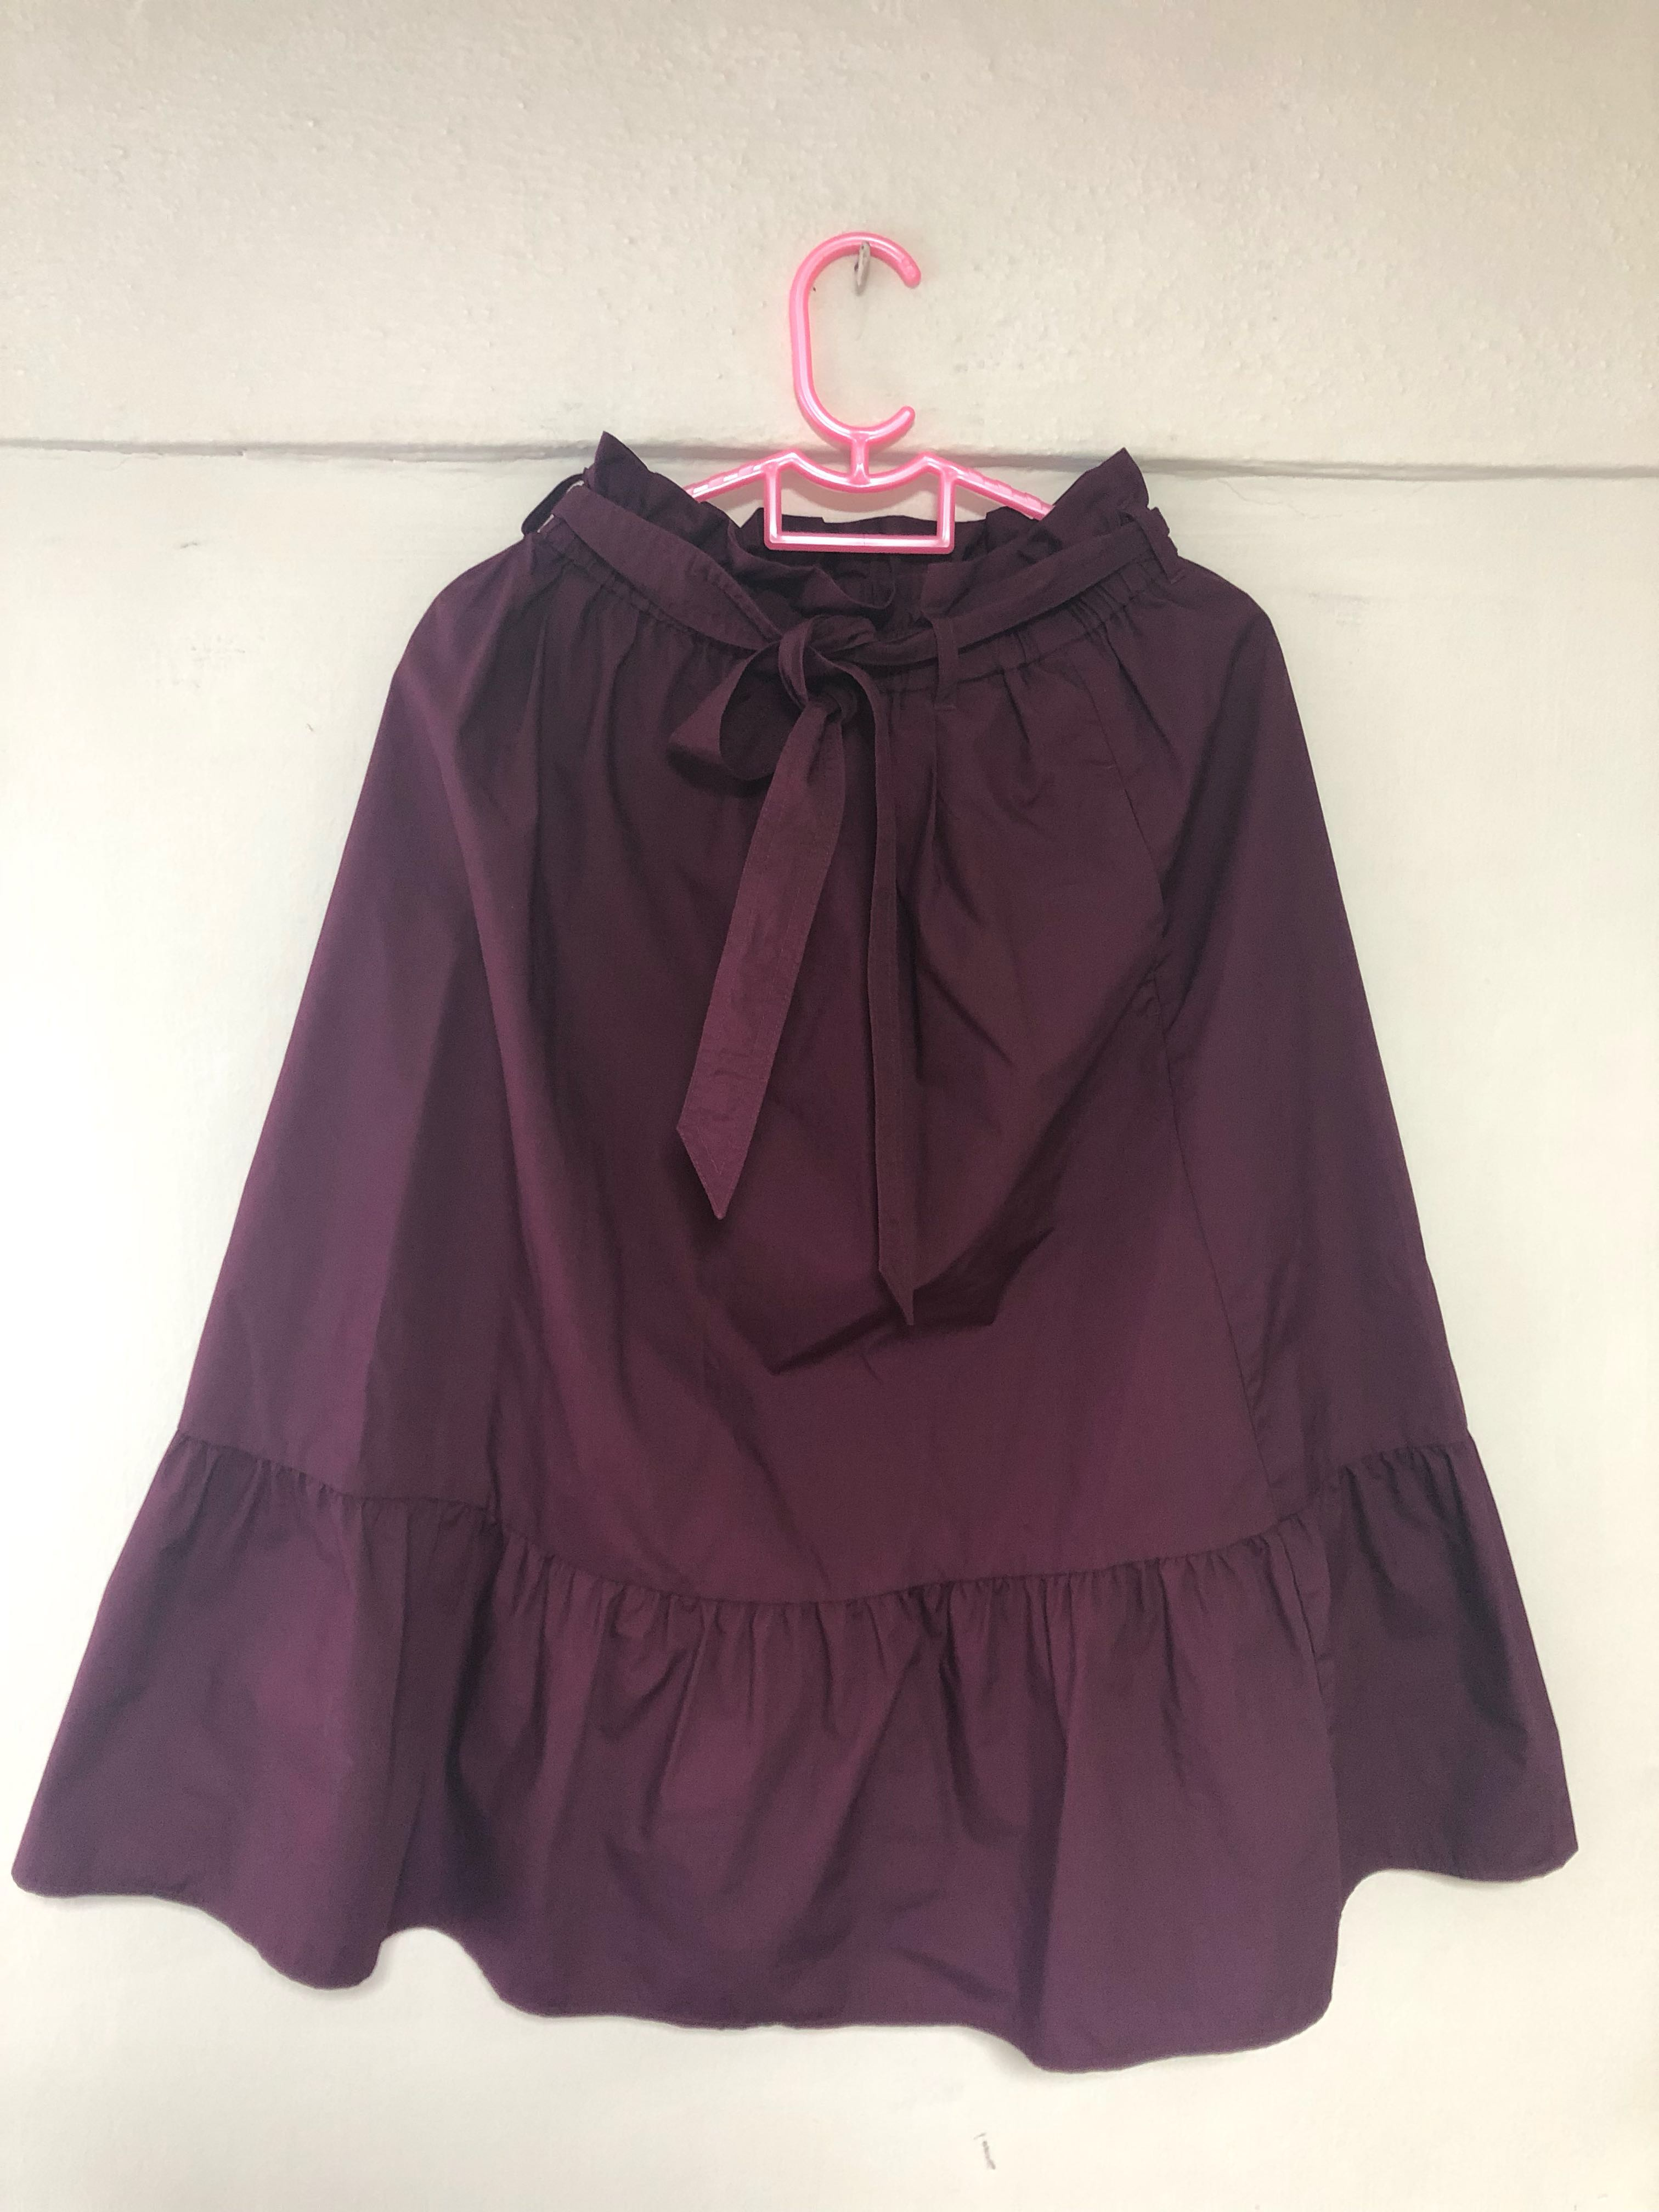 0dd528c49f UNIQLO MAROON PAPERBAG MIDI SKIRT, Women's Fashion, Clothes, Dresses &  Skirts on Carousell